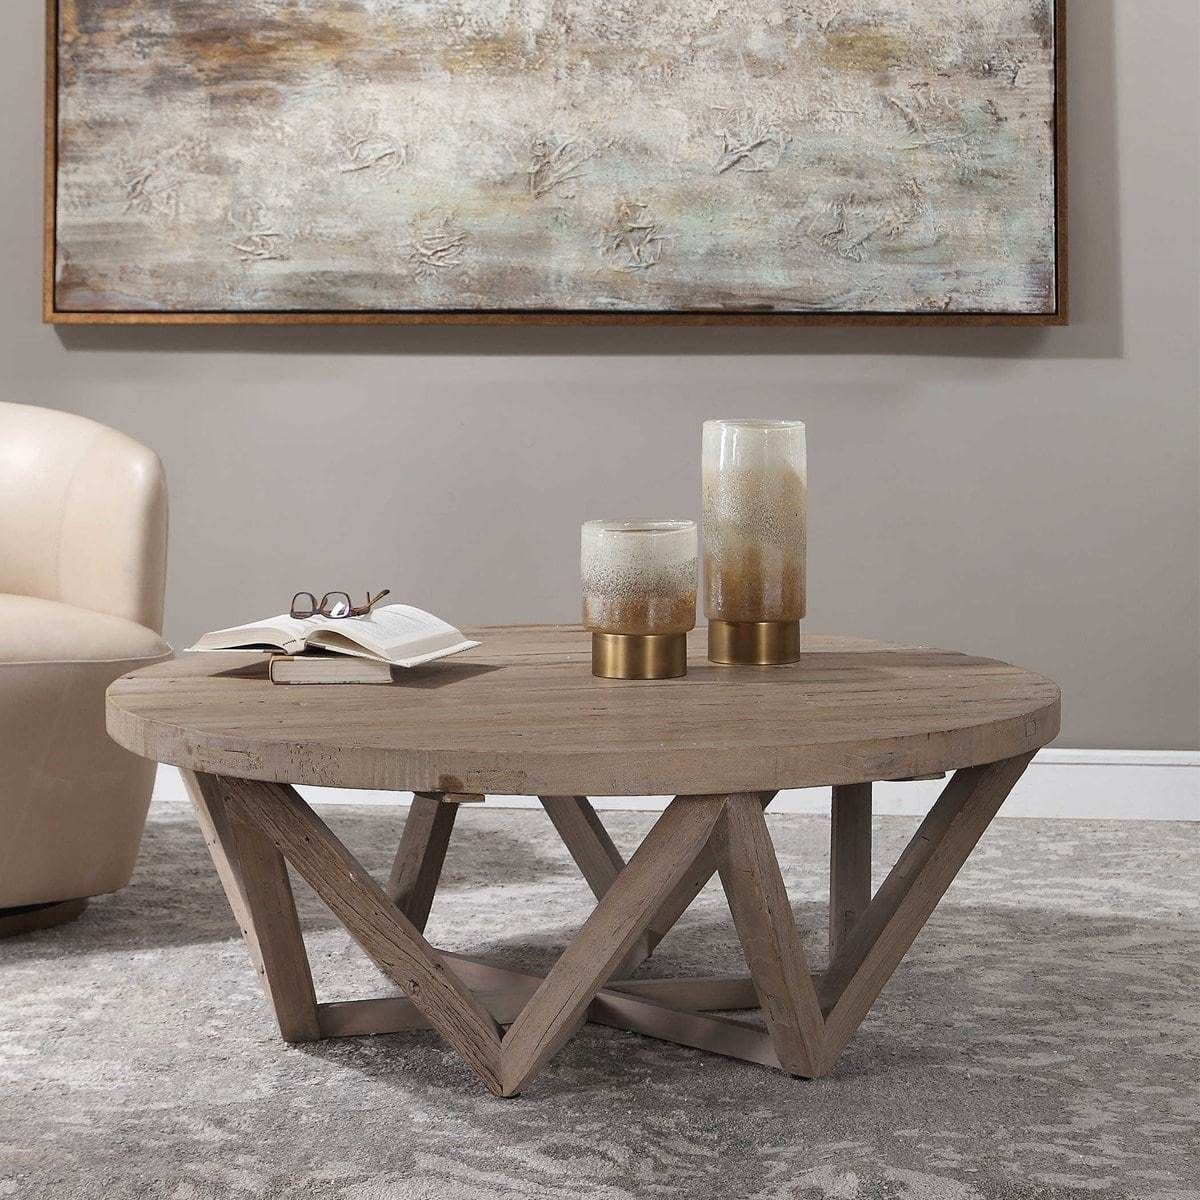 You Ll Love The Juno Coffee Table At Joss Main With Great Deals On All Products And Free Ship Coffee Table Farmhouse Coffee Table Coffee Table With Casters [ 1500 x 1500 Pixel ]